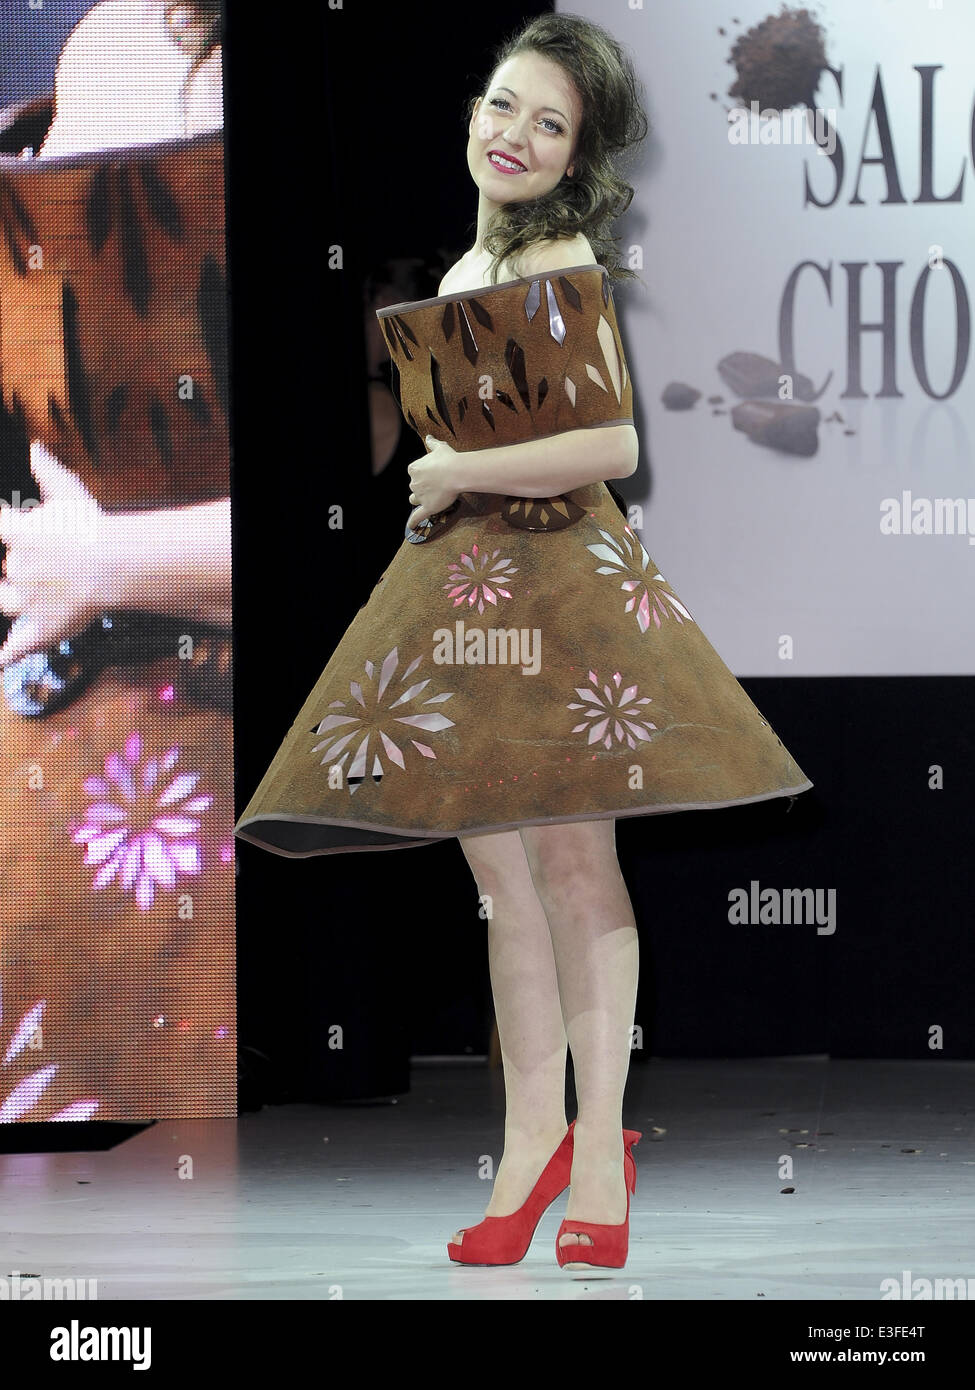 2013 Chocolate Fashion Show held at Le Salon du Chocolat Featuring ...